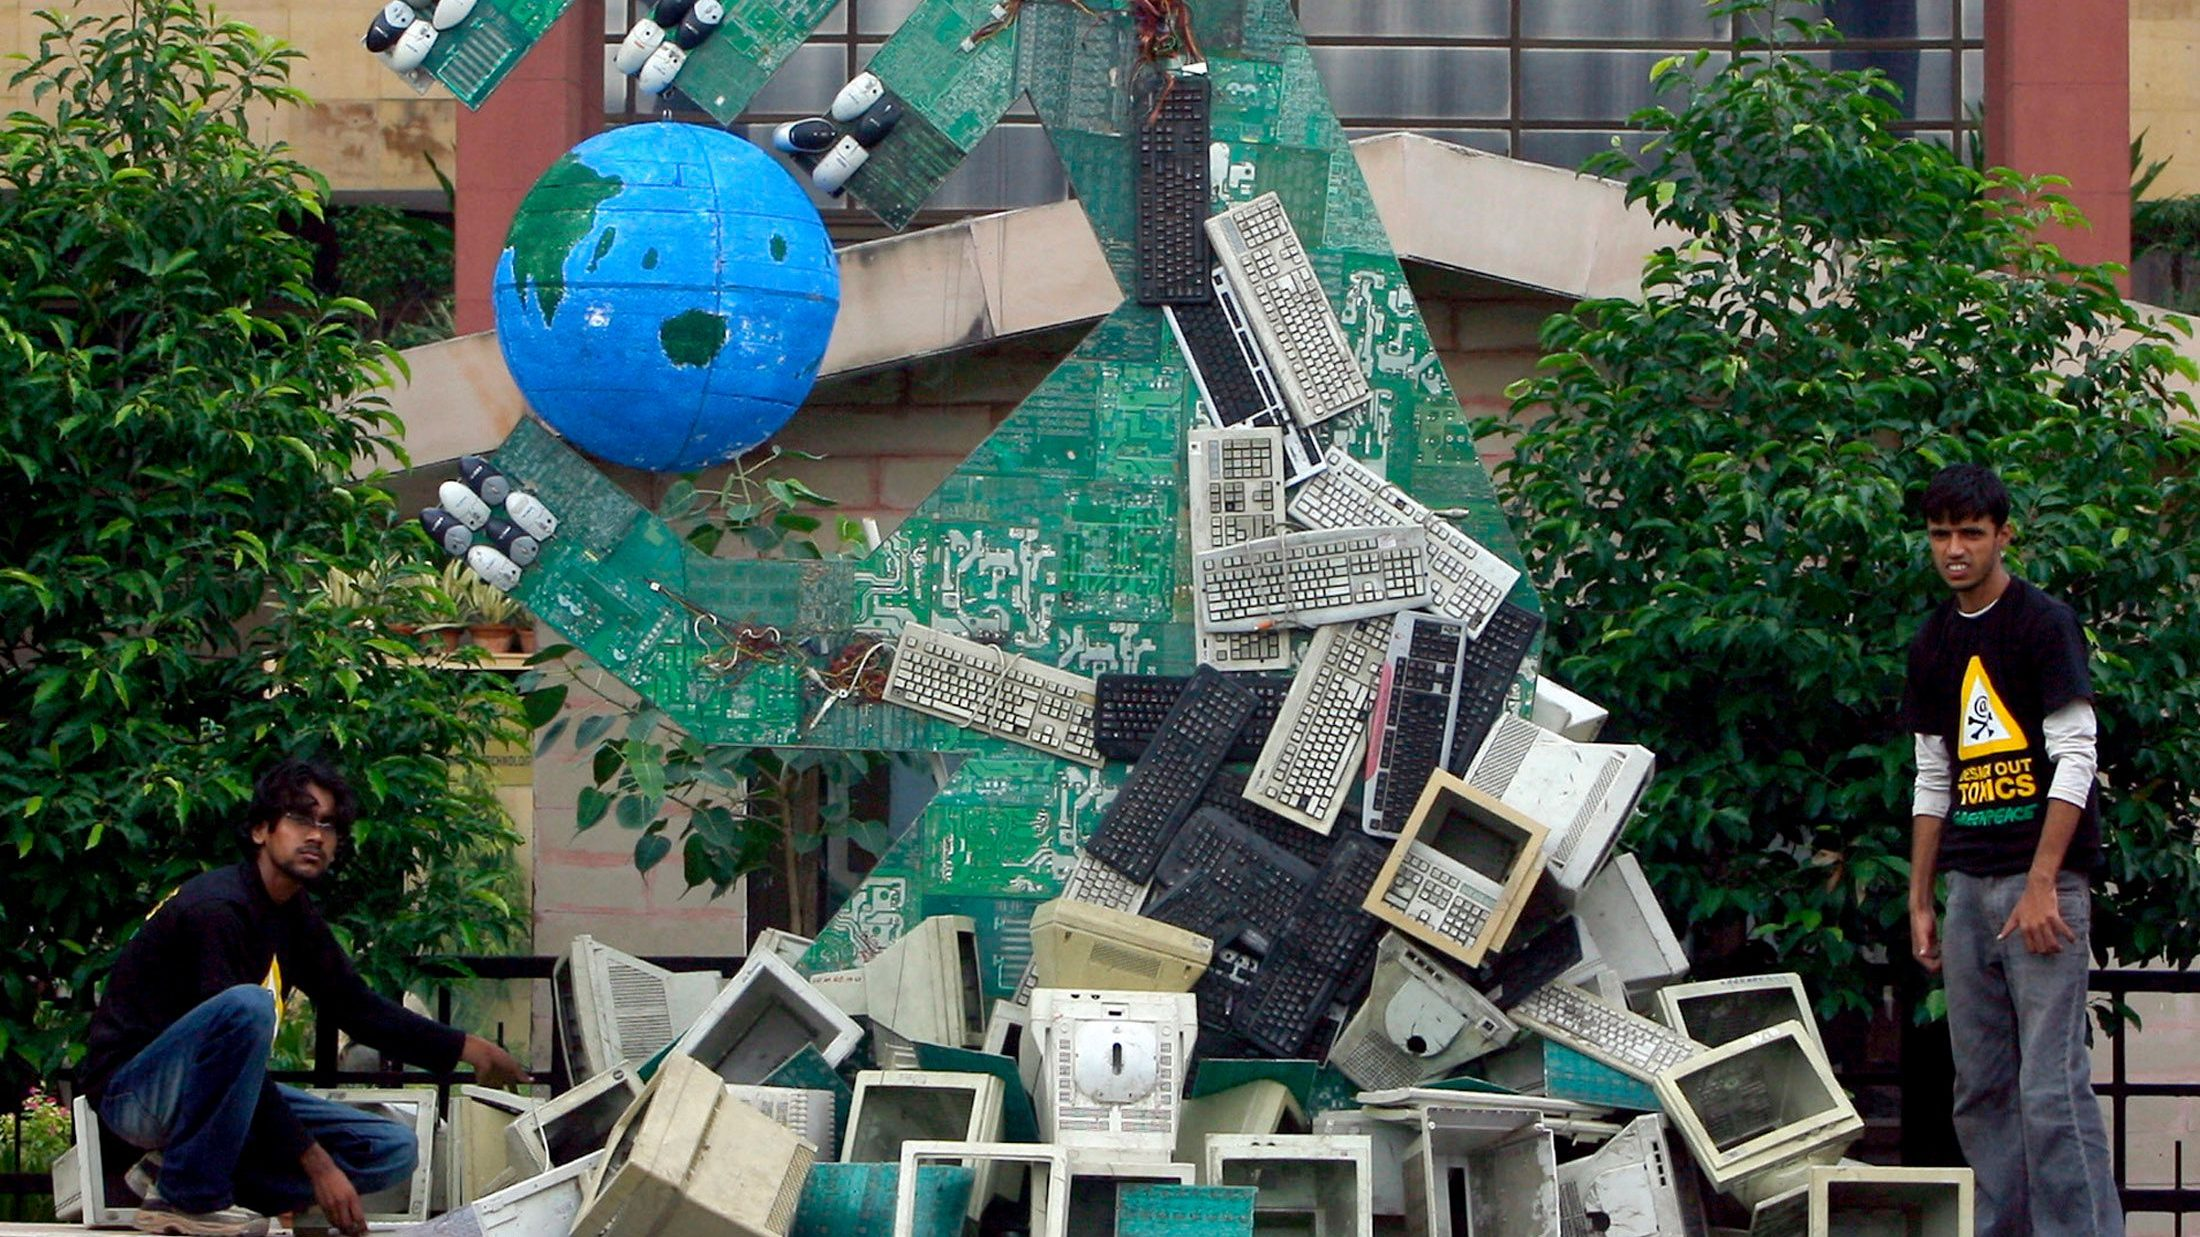 Greenpeace activists set up an art installation made of dismantled computers to send a message on hazardous electronic waste during a protest in front of the office of Indian Ministry of Information Technology in New Delhi August 20, 2007. REUTERS/Vijay Mathur (INDIA) - GM1DVYVJAVAA